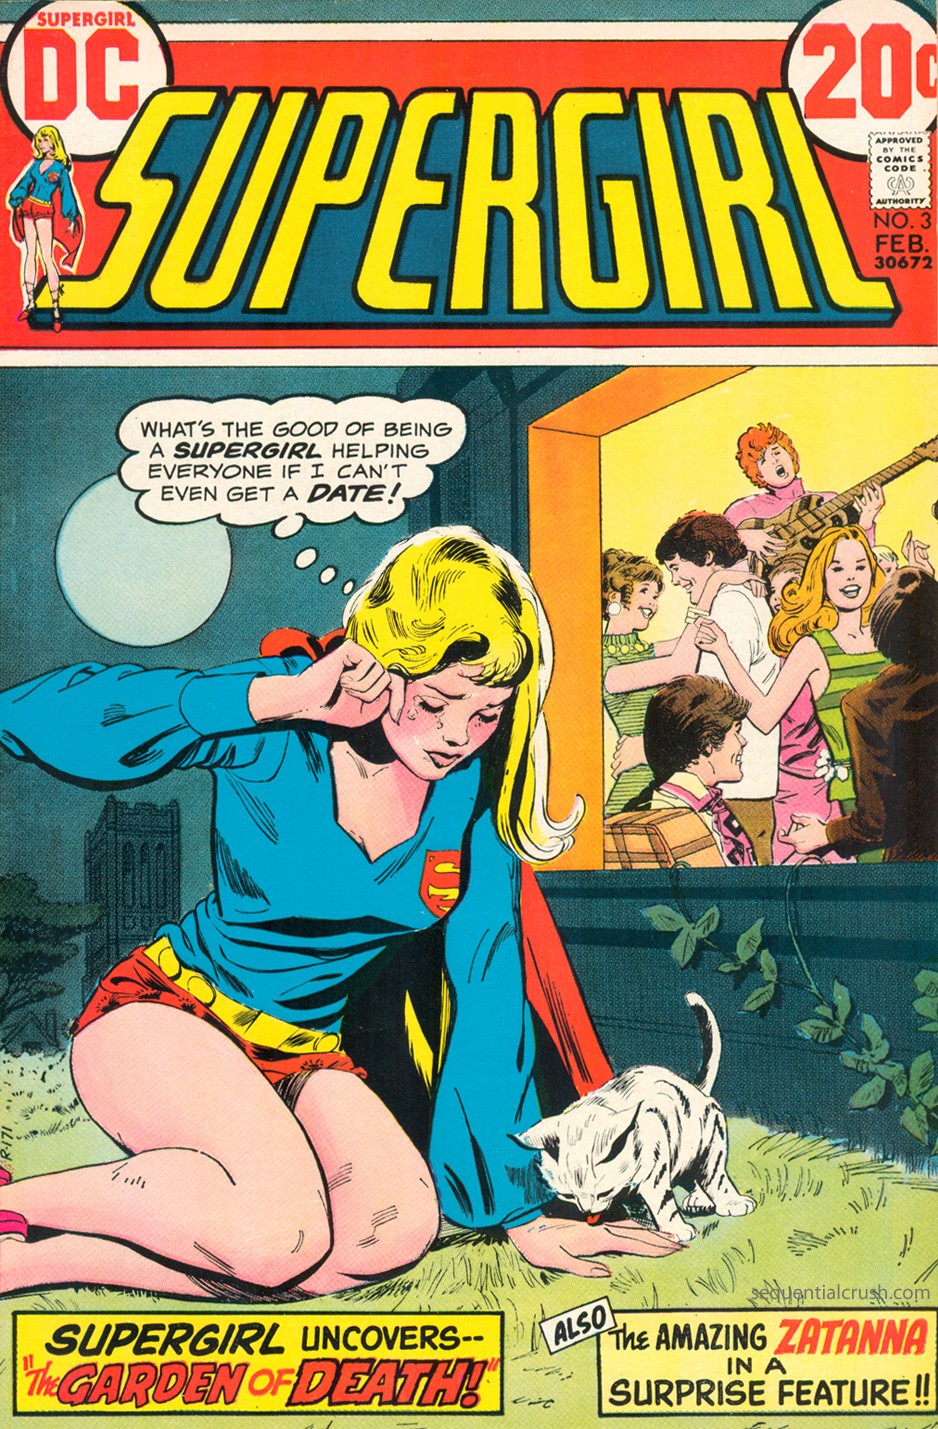 Supergirl  #3 (February 1973) Pencils and Inks: Bob Oksner